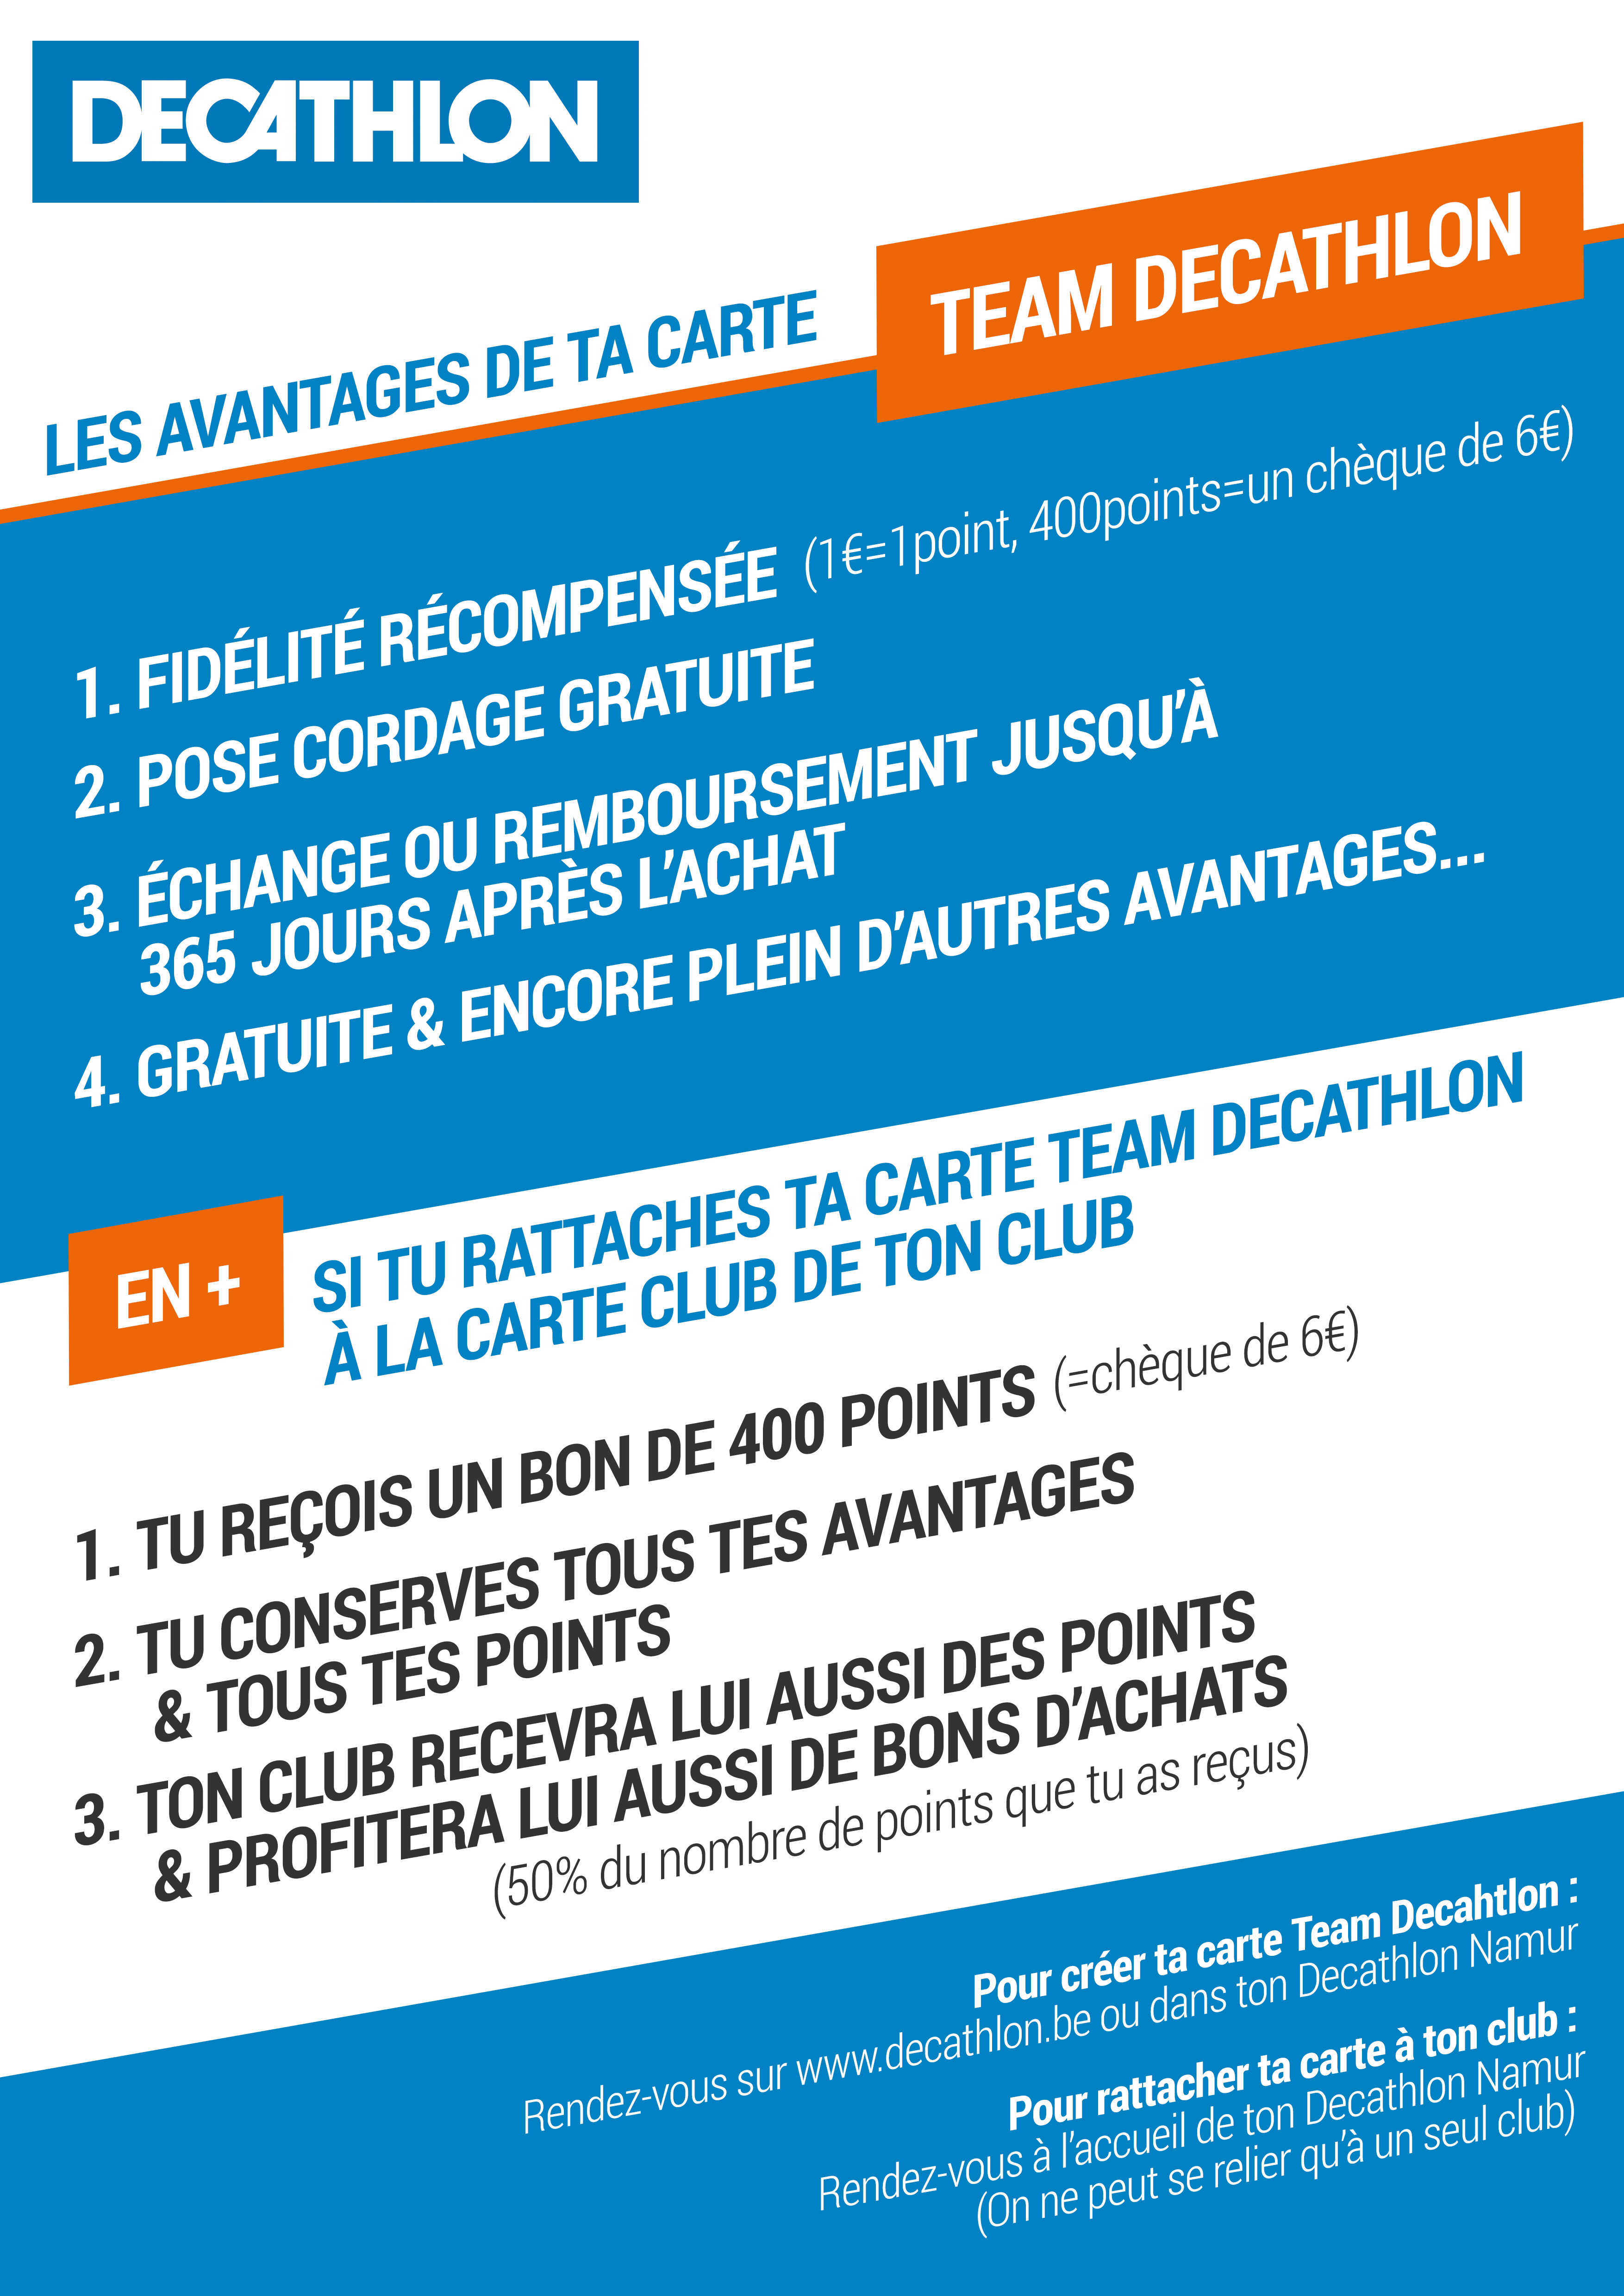 DECATHLON-club-namur